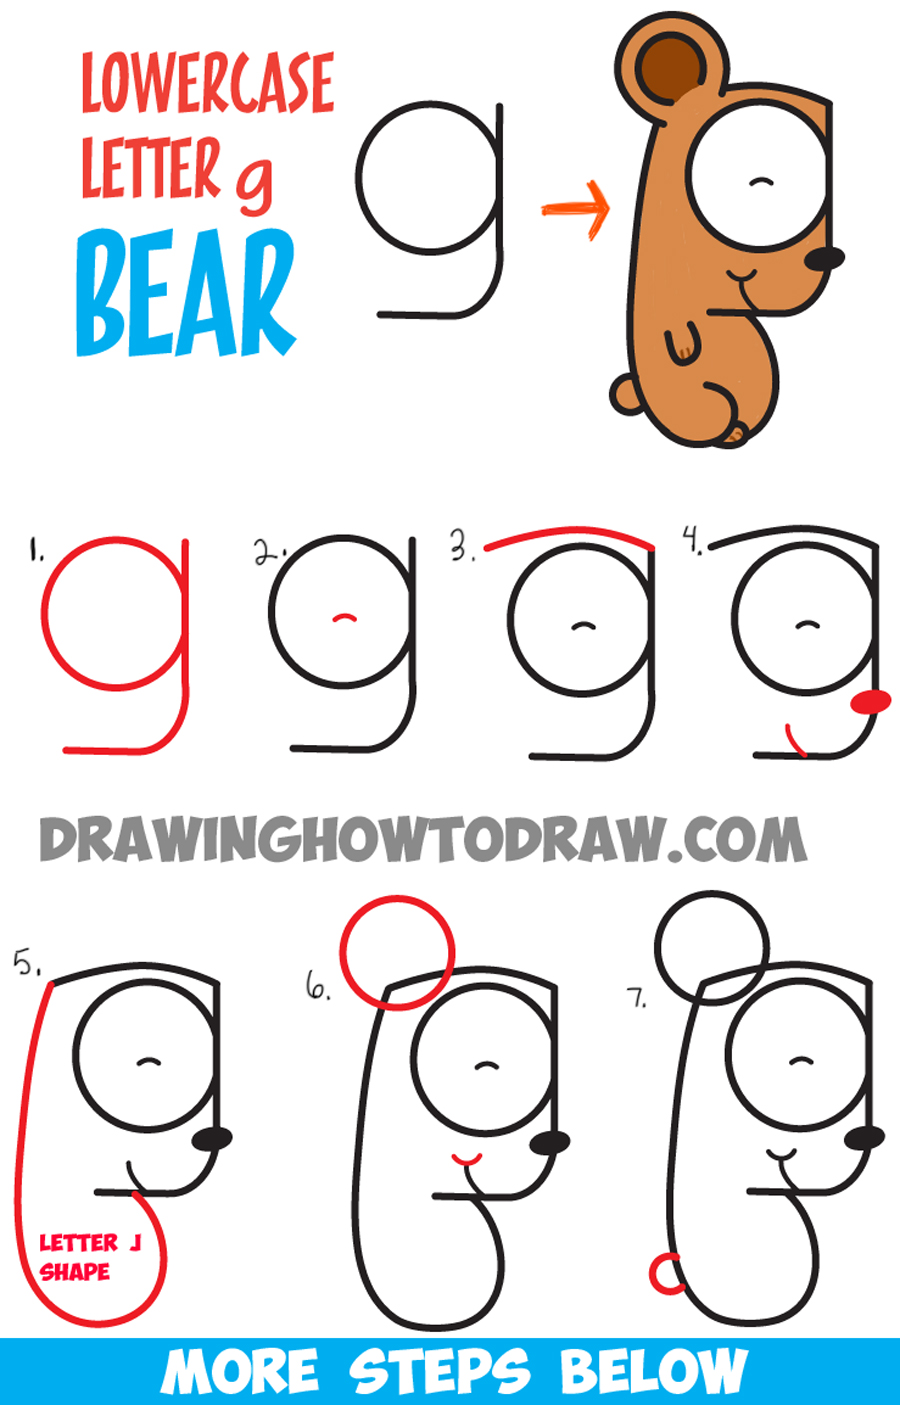 How to draw cartoon bear cub from lowercase letter g for How to make cartoon drawings step by step